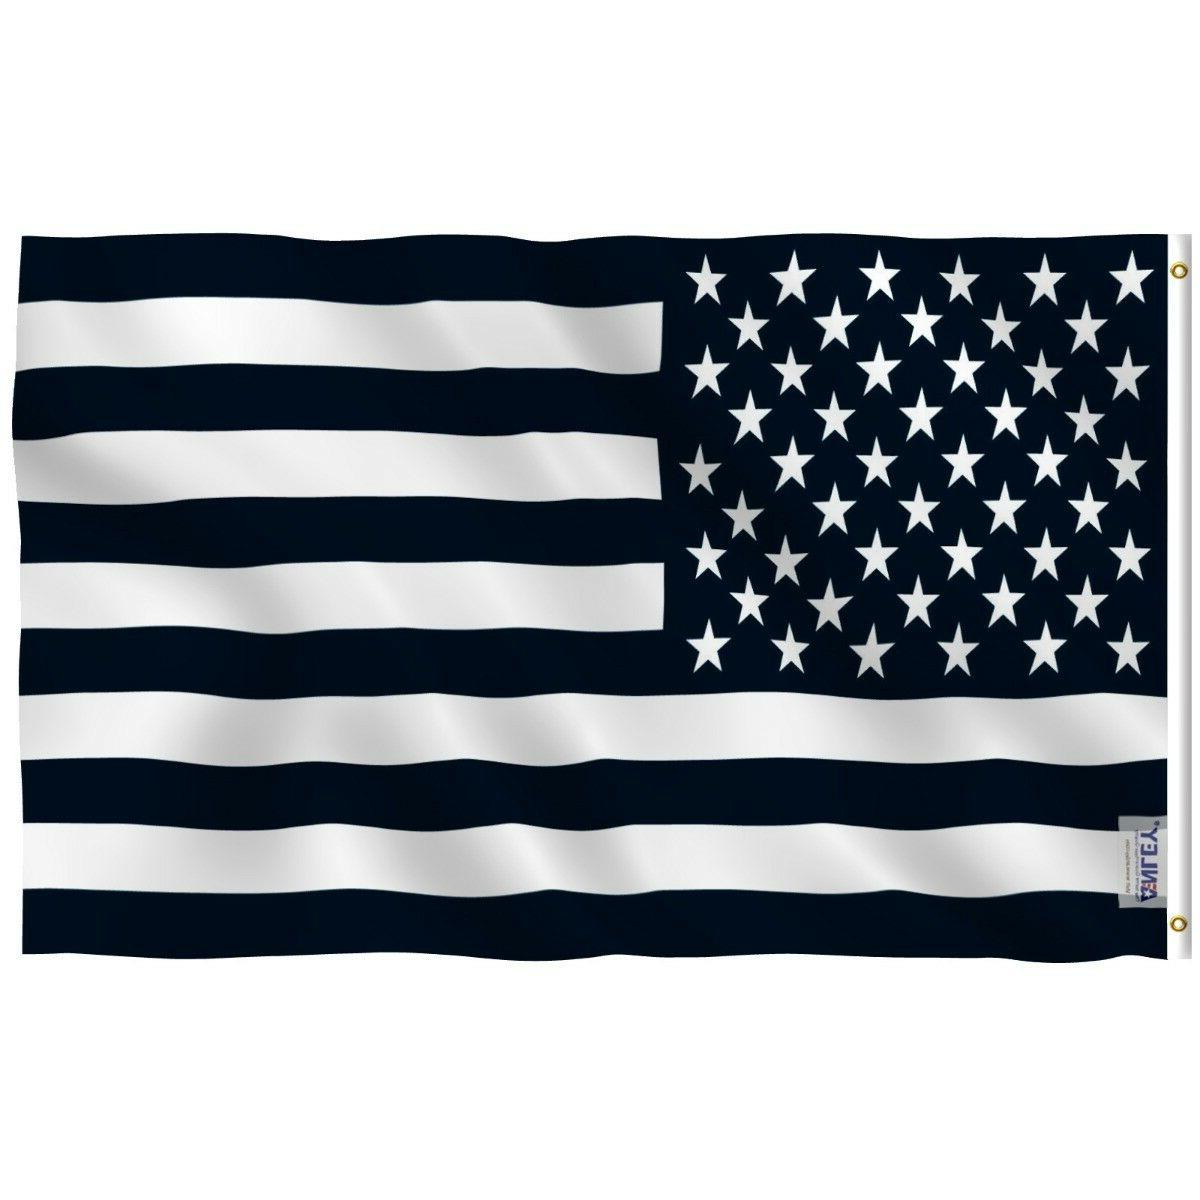 black and white american flag recession banner